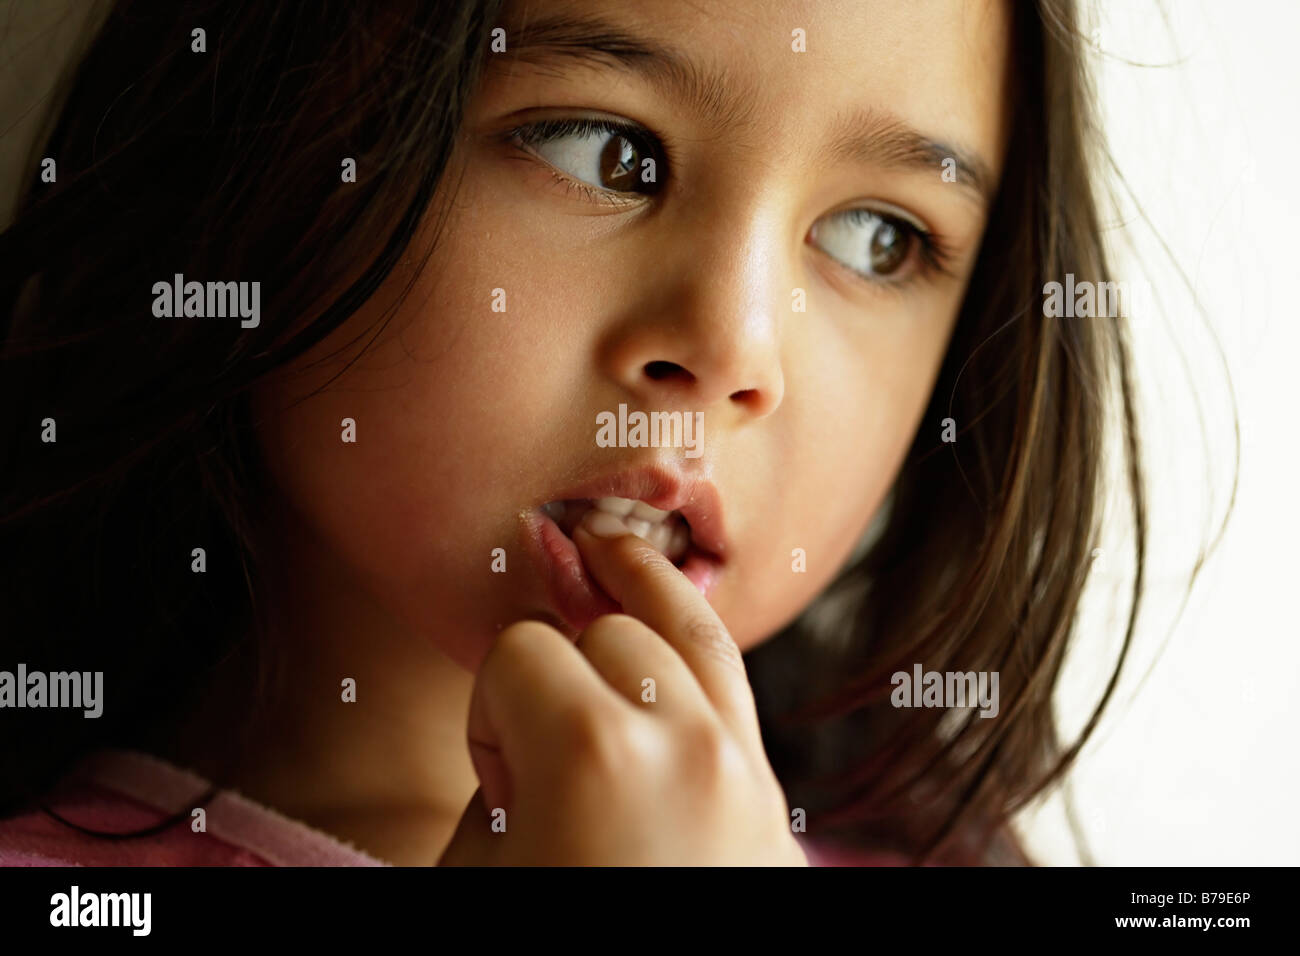 Five year old girl chews nails - Stock Image